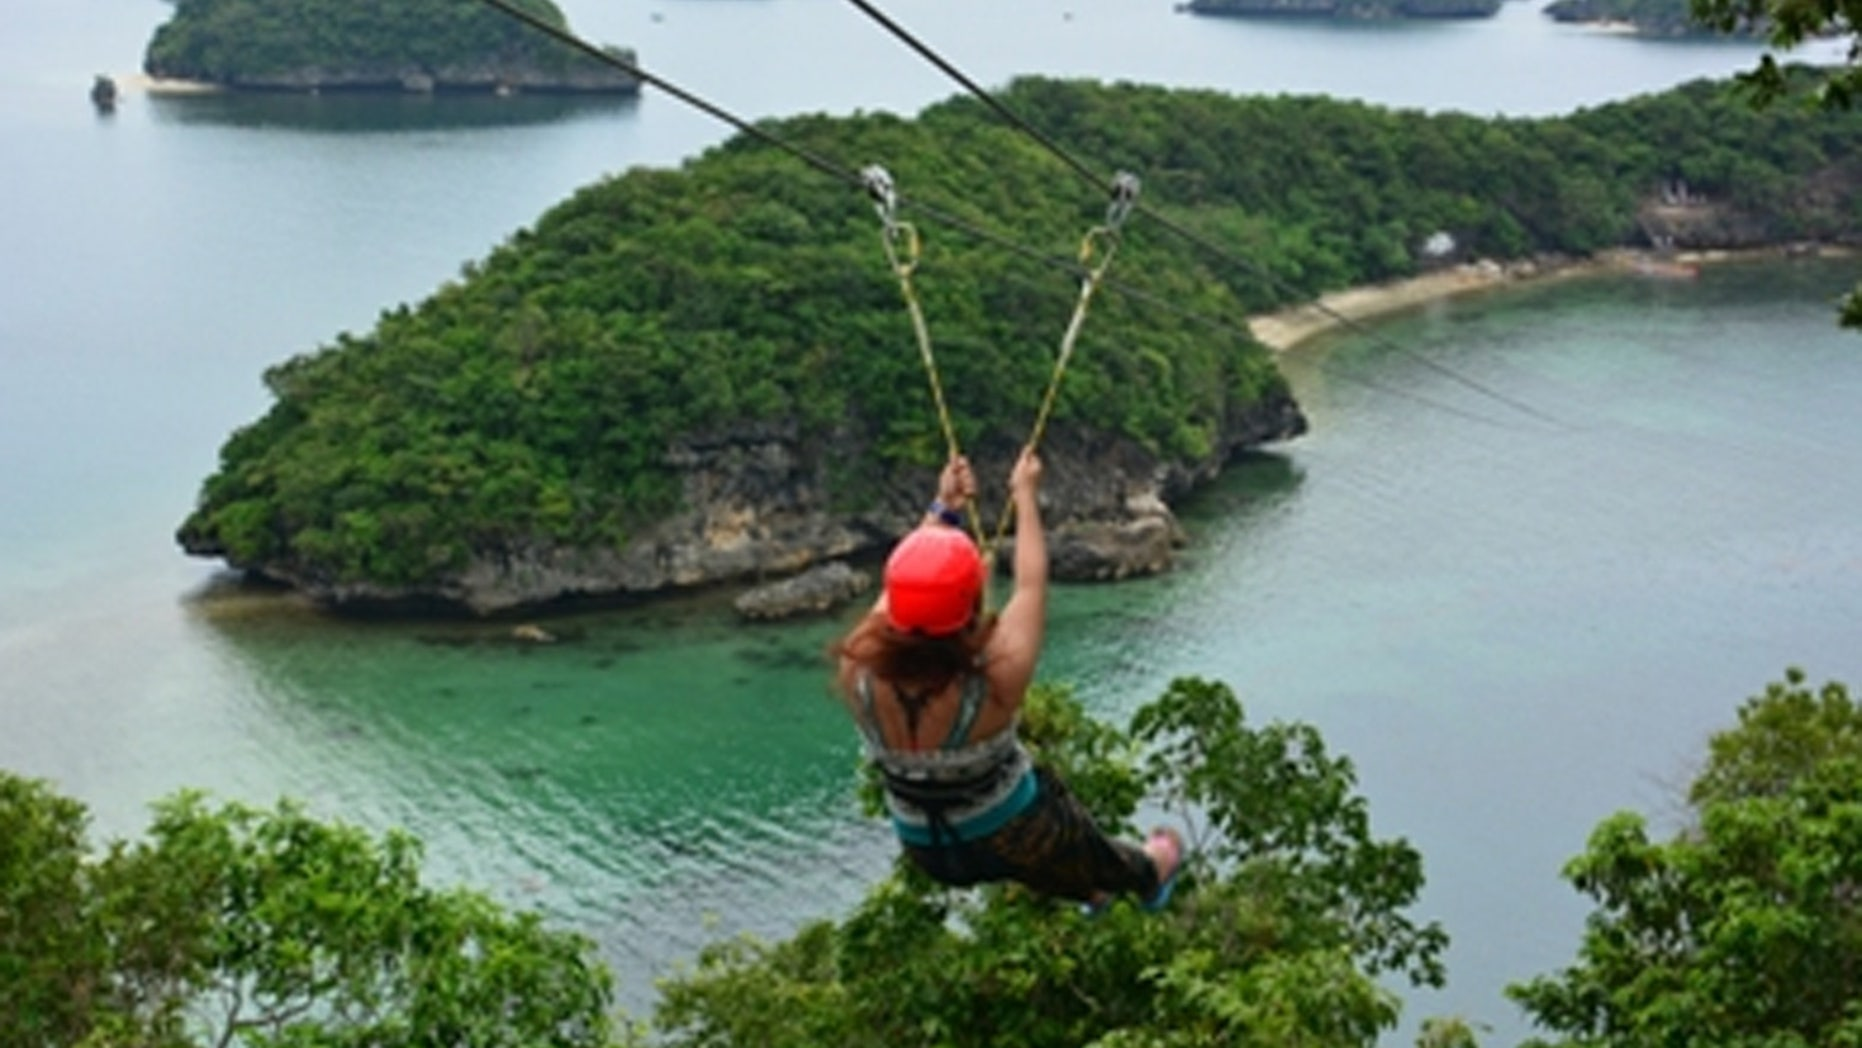 FILE: An Israeli man on his honeymoon was killed and his wife seriously injured in an accident involving a zip line in Honduras, according to reports.